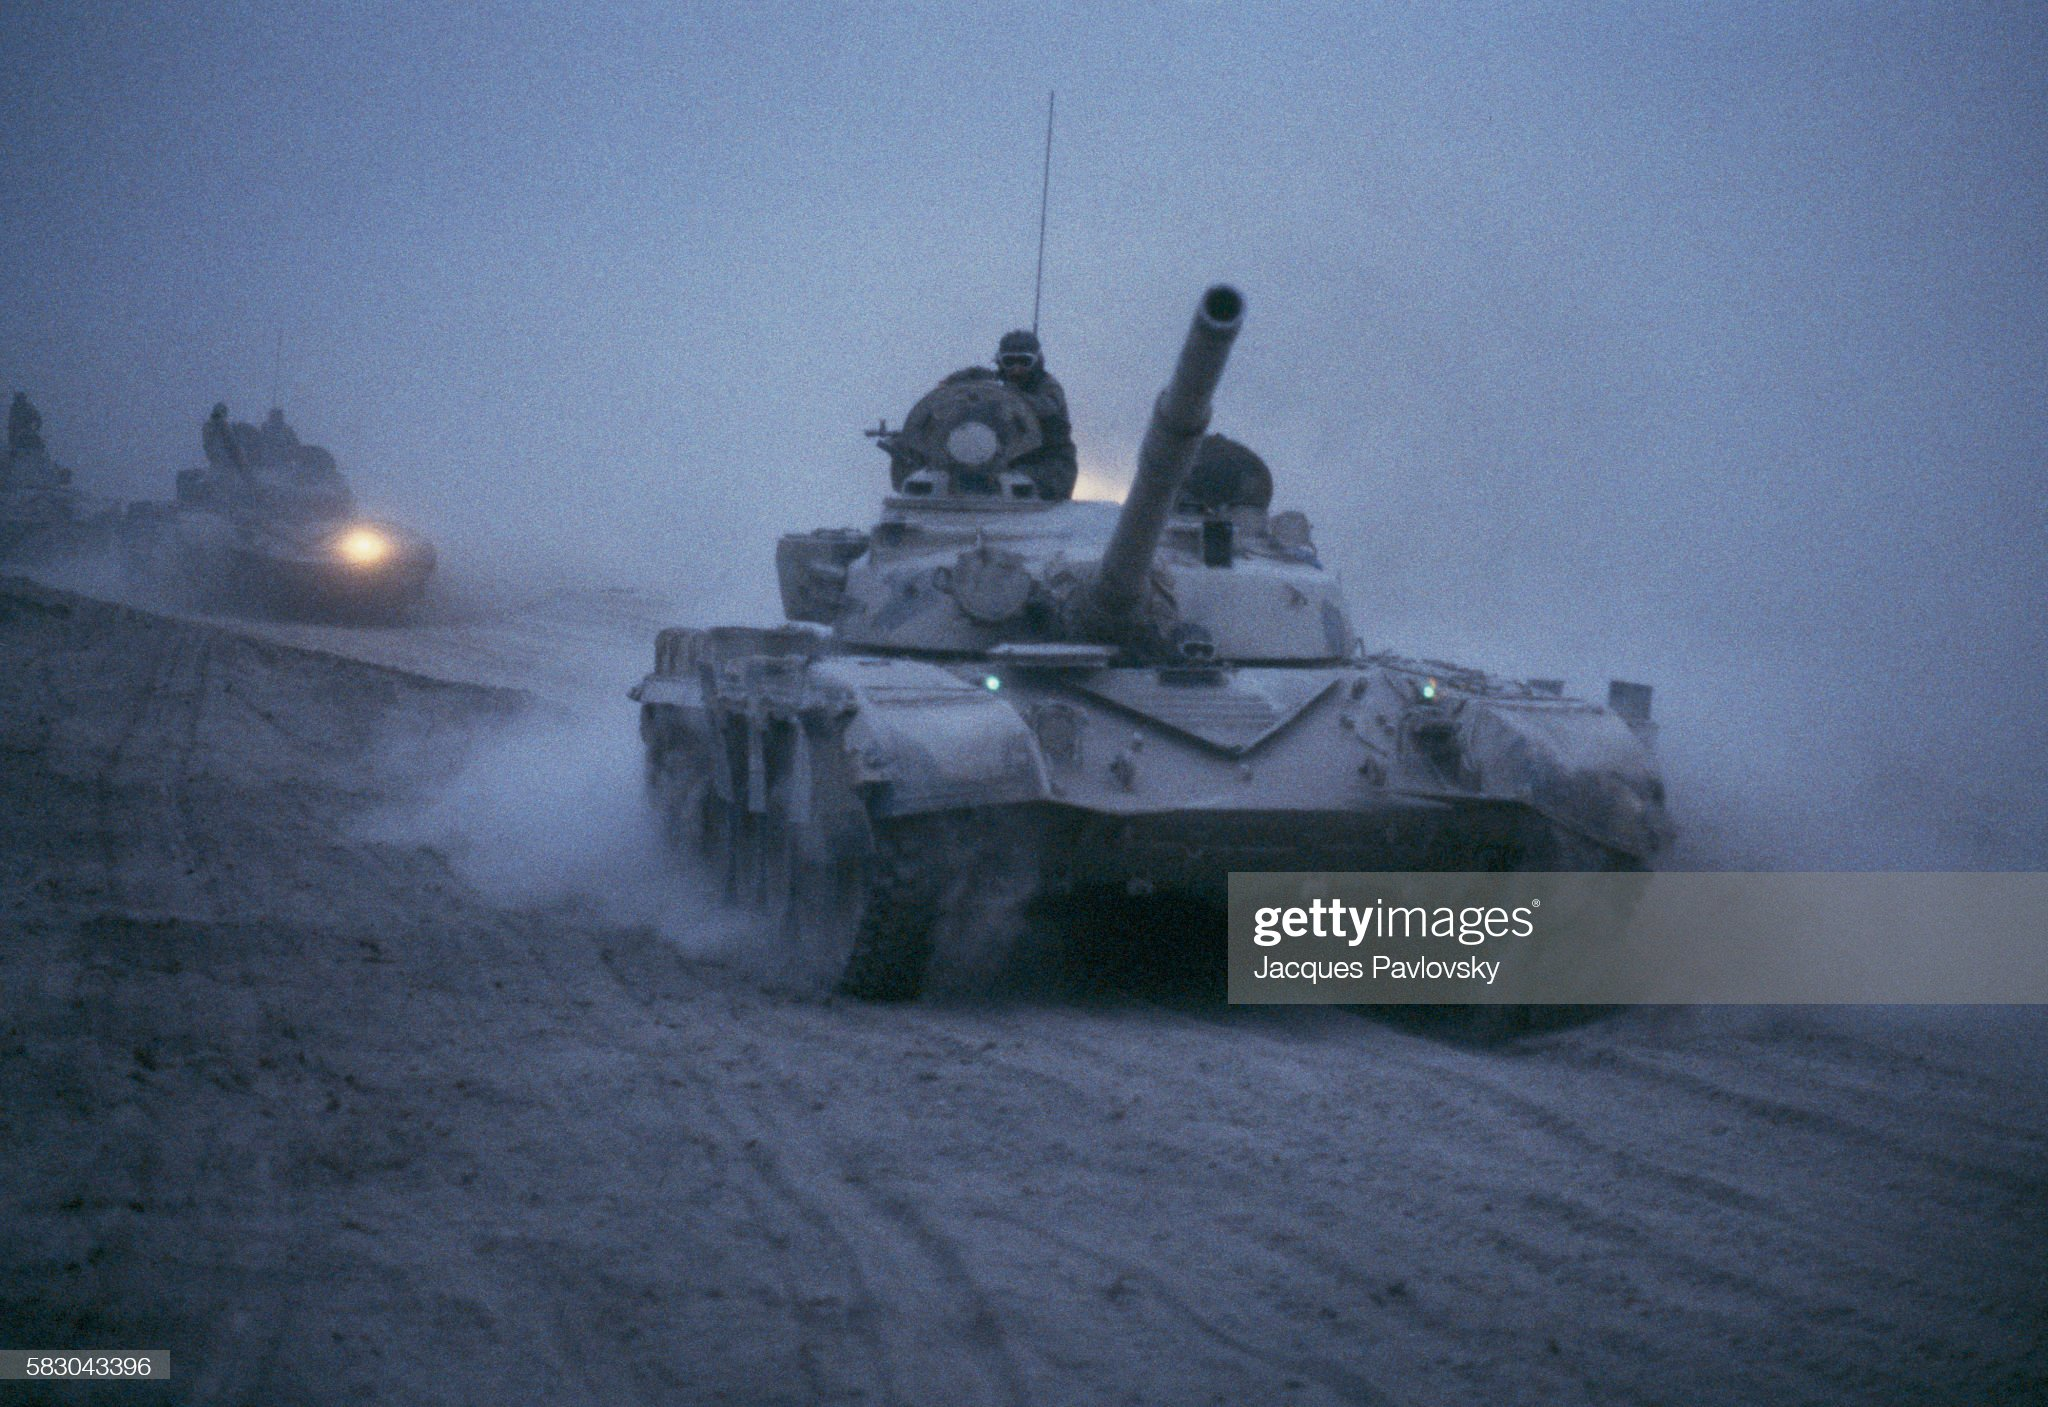 https://media.gettyimages.com/photos/an-iraqi-tank-on-the-front-100-kms-from-basra-in-the-alhoueiza-swamp-picture-id583043396?s=2048x2048